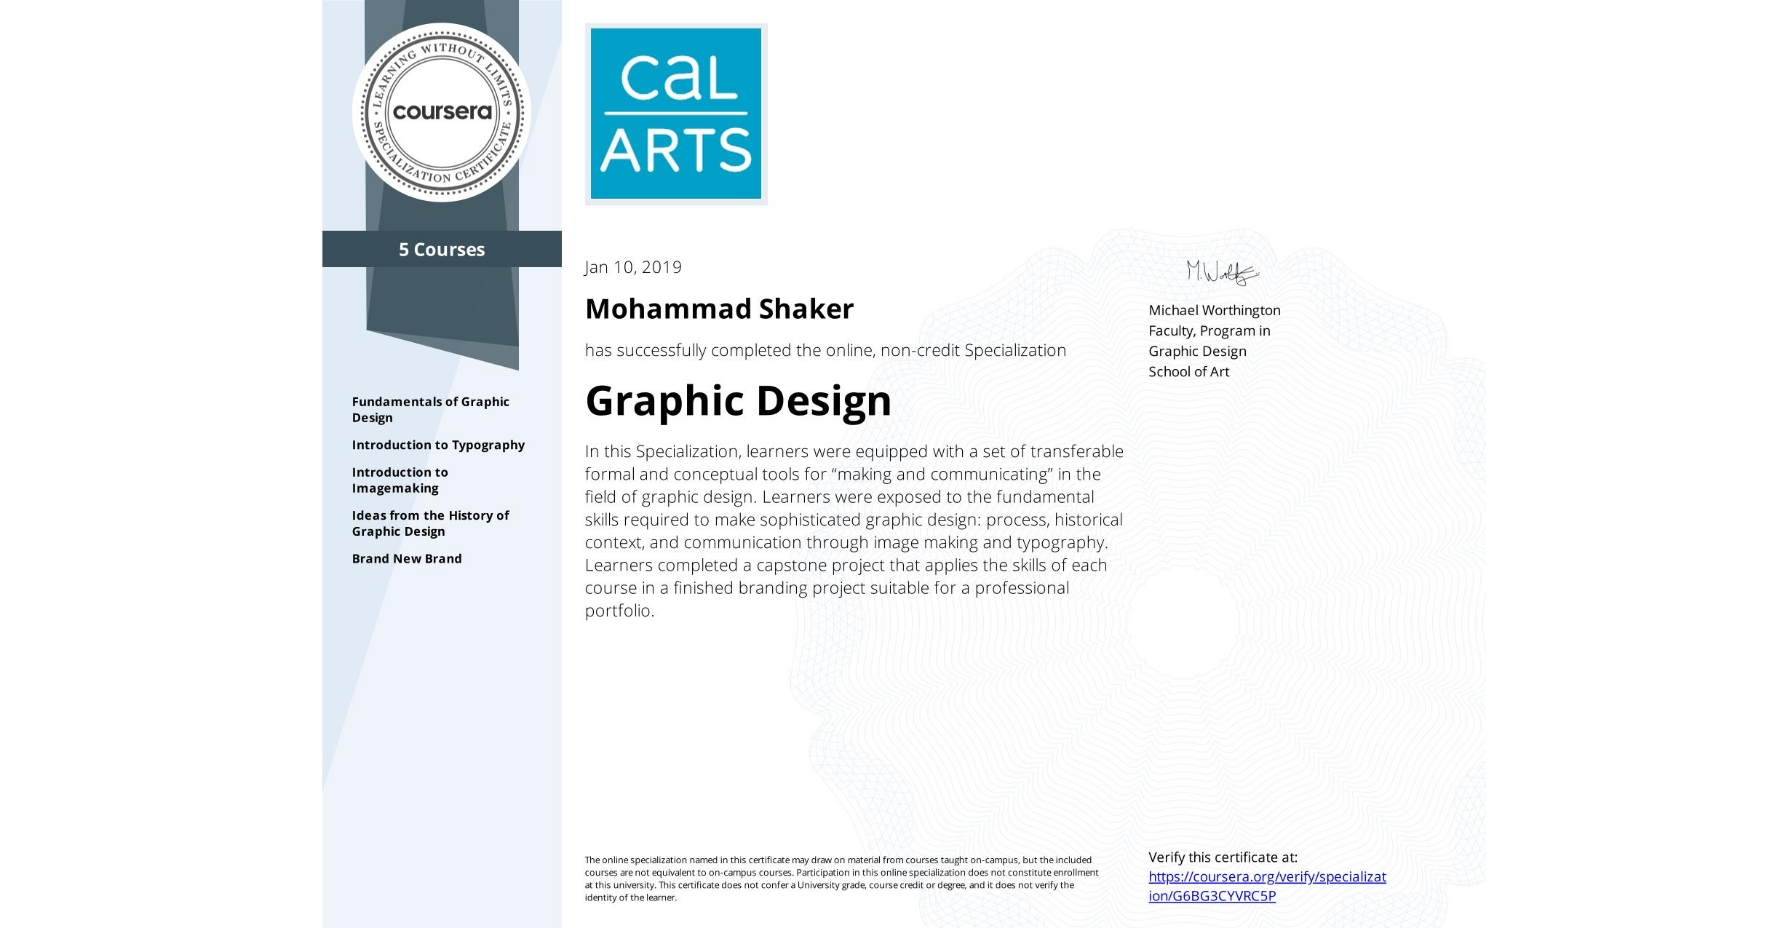 "View certificate for Mohammad Shaker, Graphic Design, offered through Coursera. In this Specialization, learners were equipped with a set of transferable formal and conceptual tools for ""making and communicating"" in the field of graphic design. Learners were exposed to the fundamental skills required to make sophisticated graphic design: process, historical context, and communication through image making and typography. Learners completed a capstone project that applies the skills of each course in a finished branding project suitable for a professional portfolio."